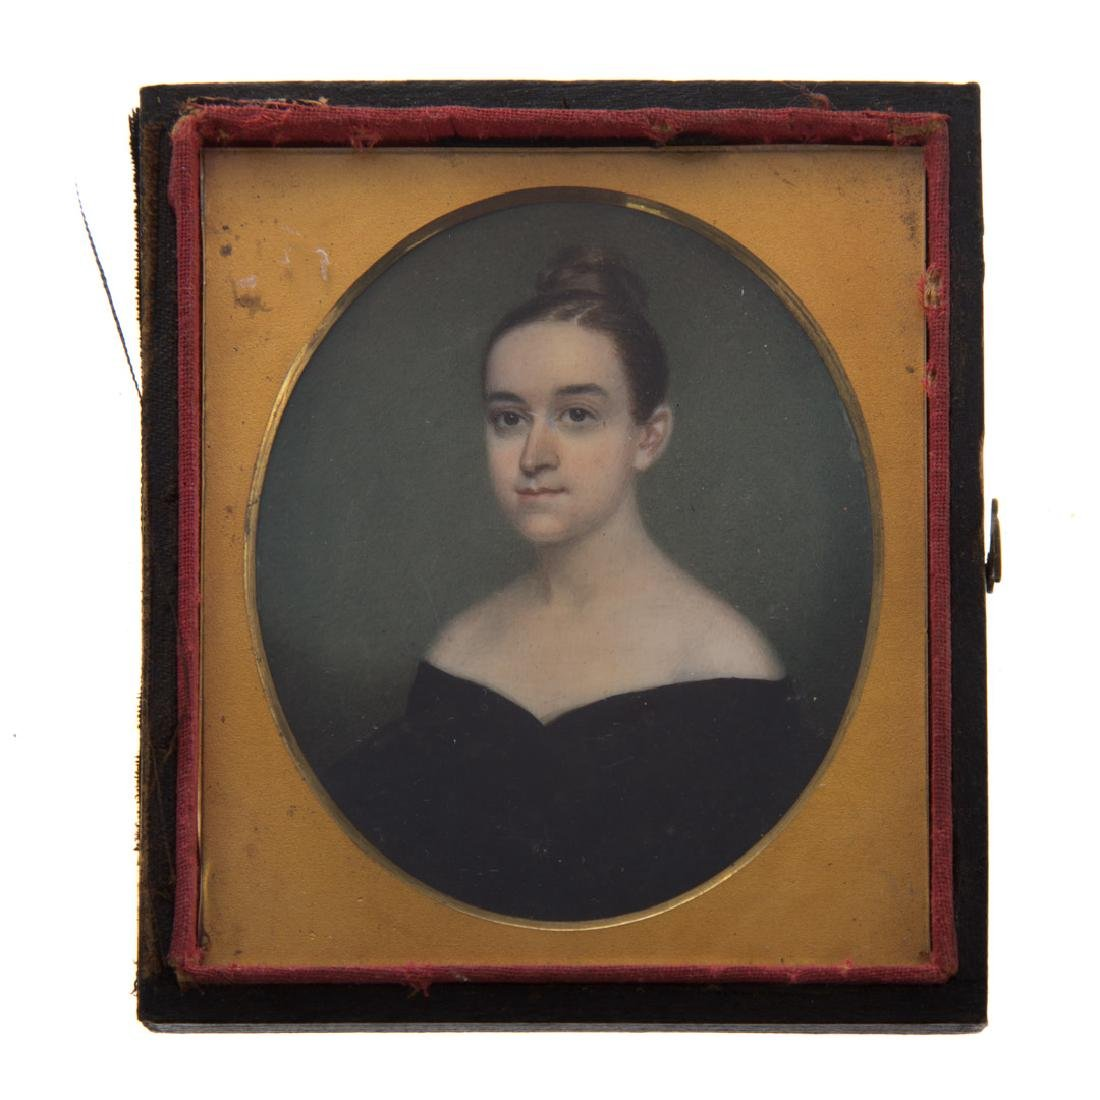 Attributed to Nathaniel Rogers. Miniature portrait